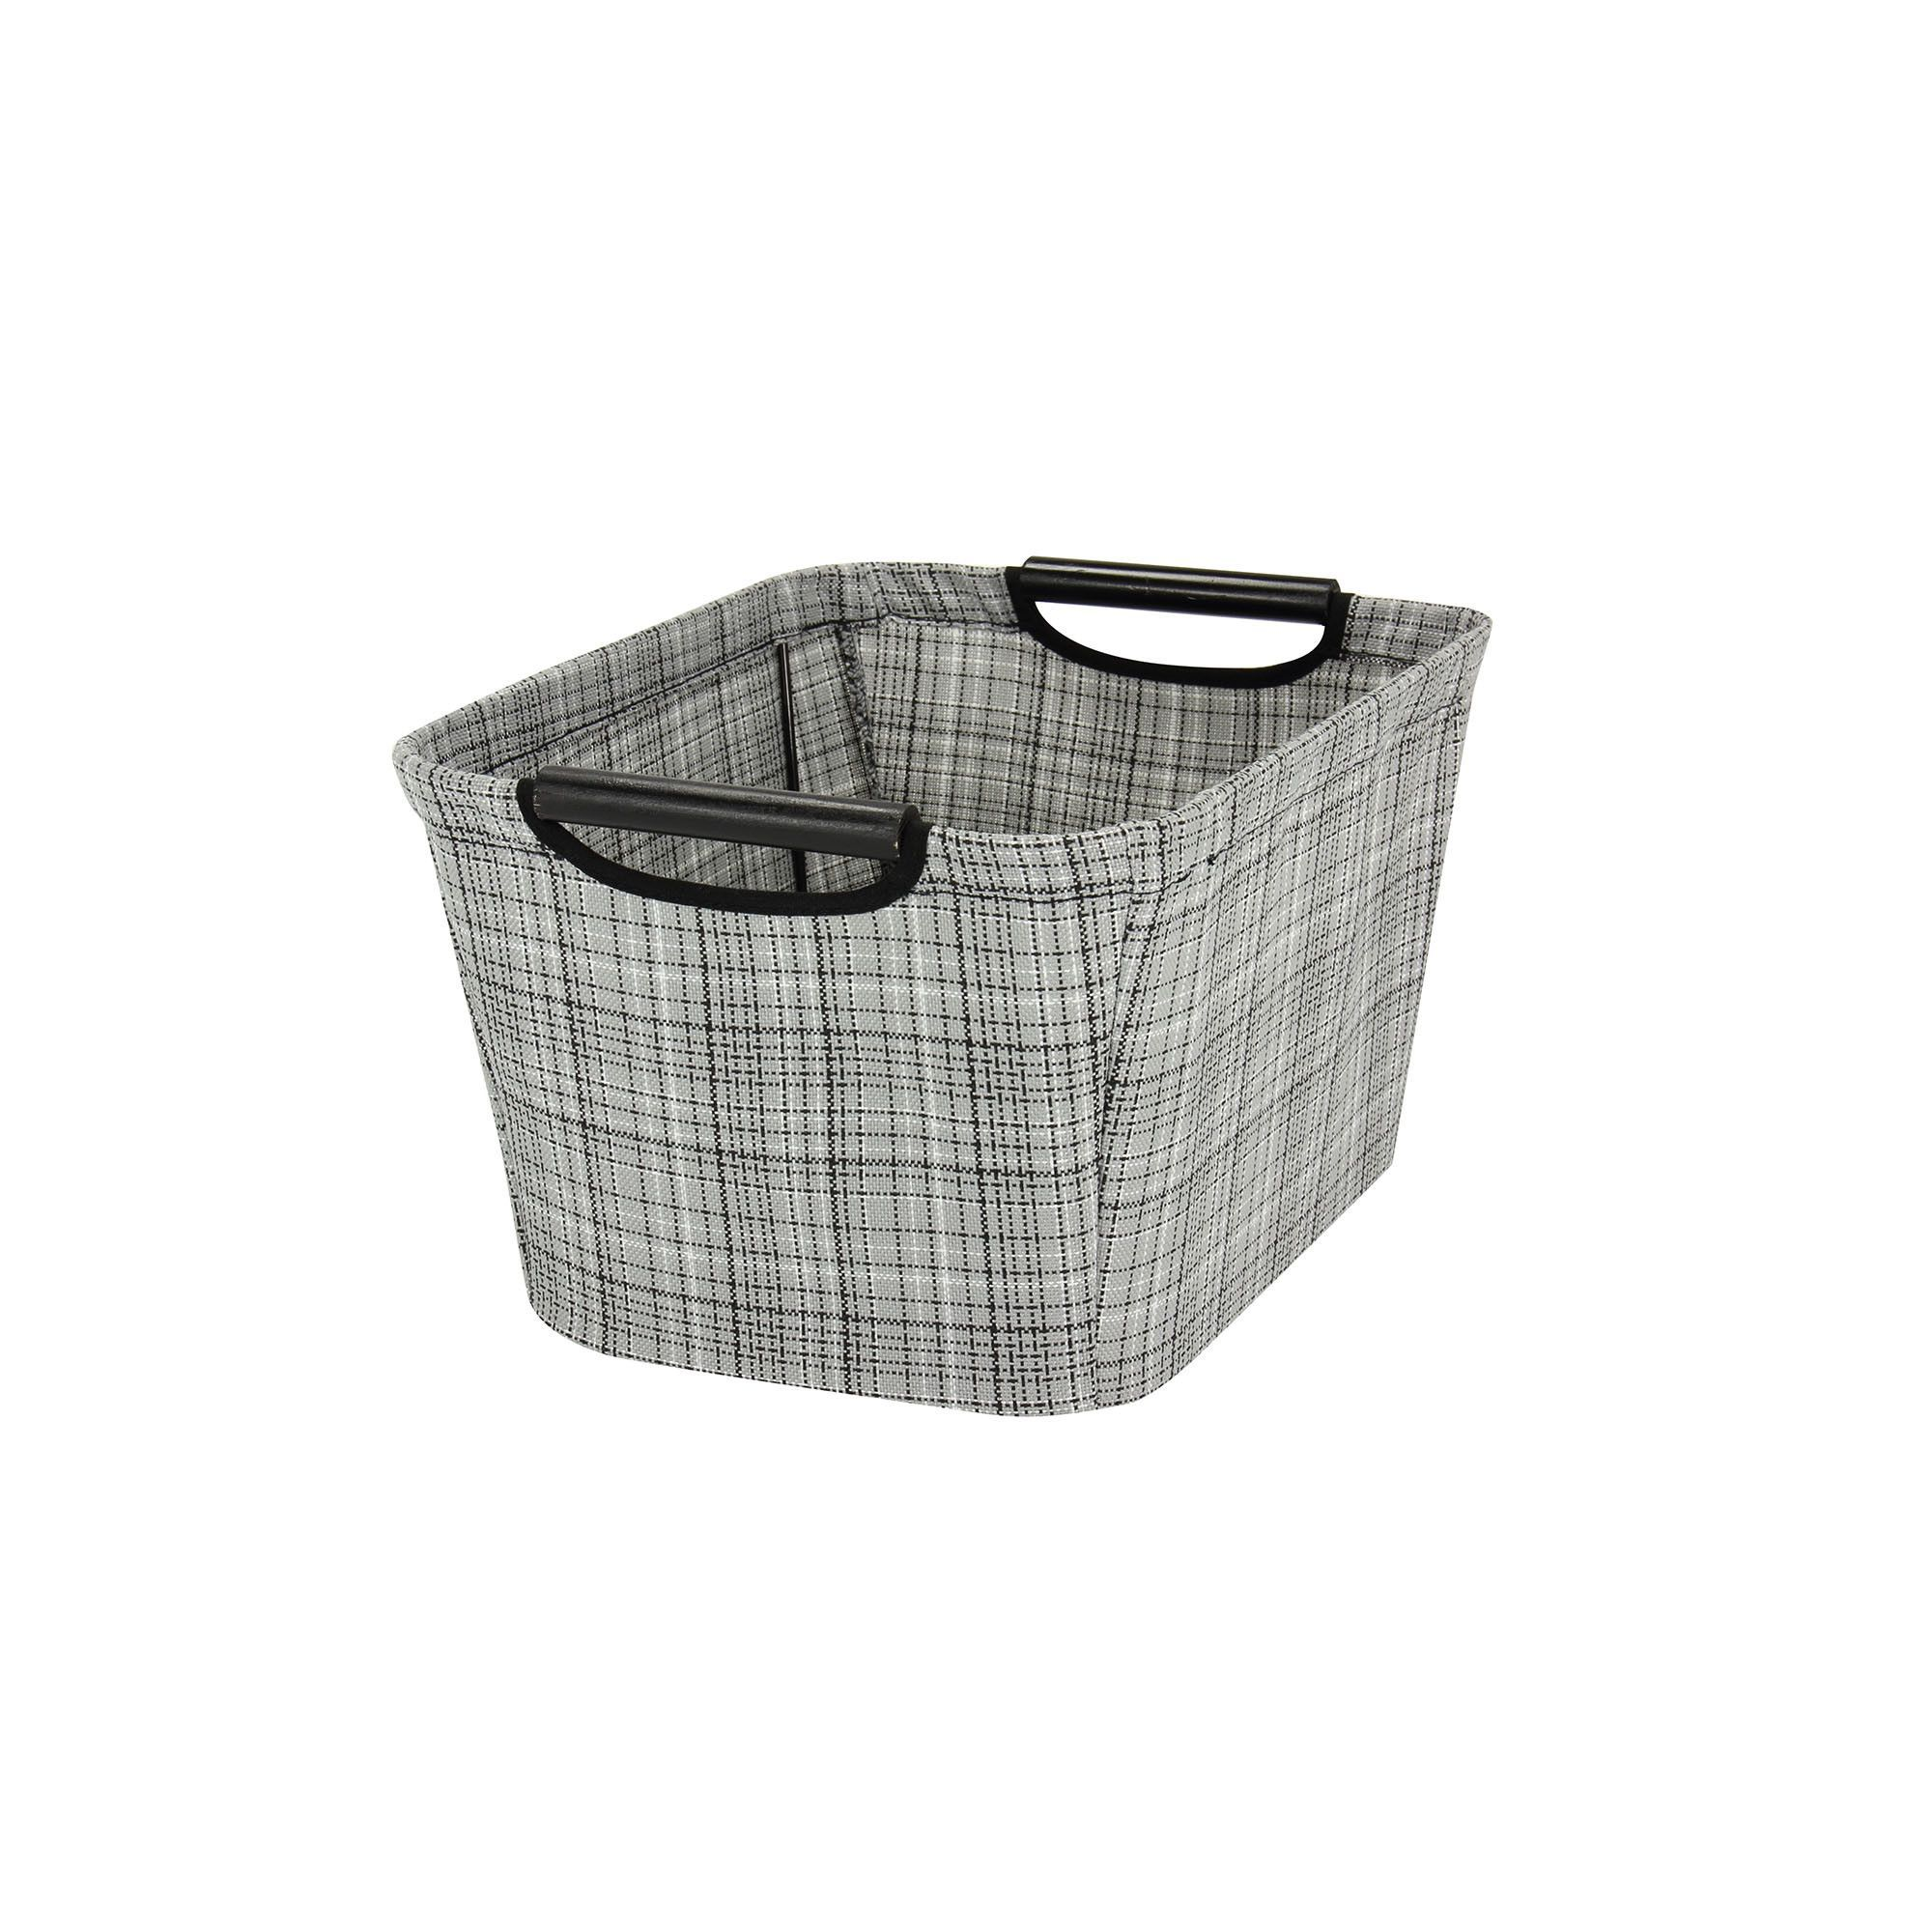 Small Tapered Storage Bin with Wood Handles, Gray plaid